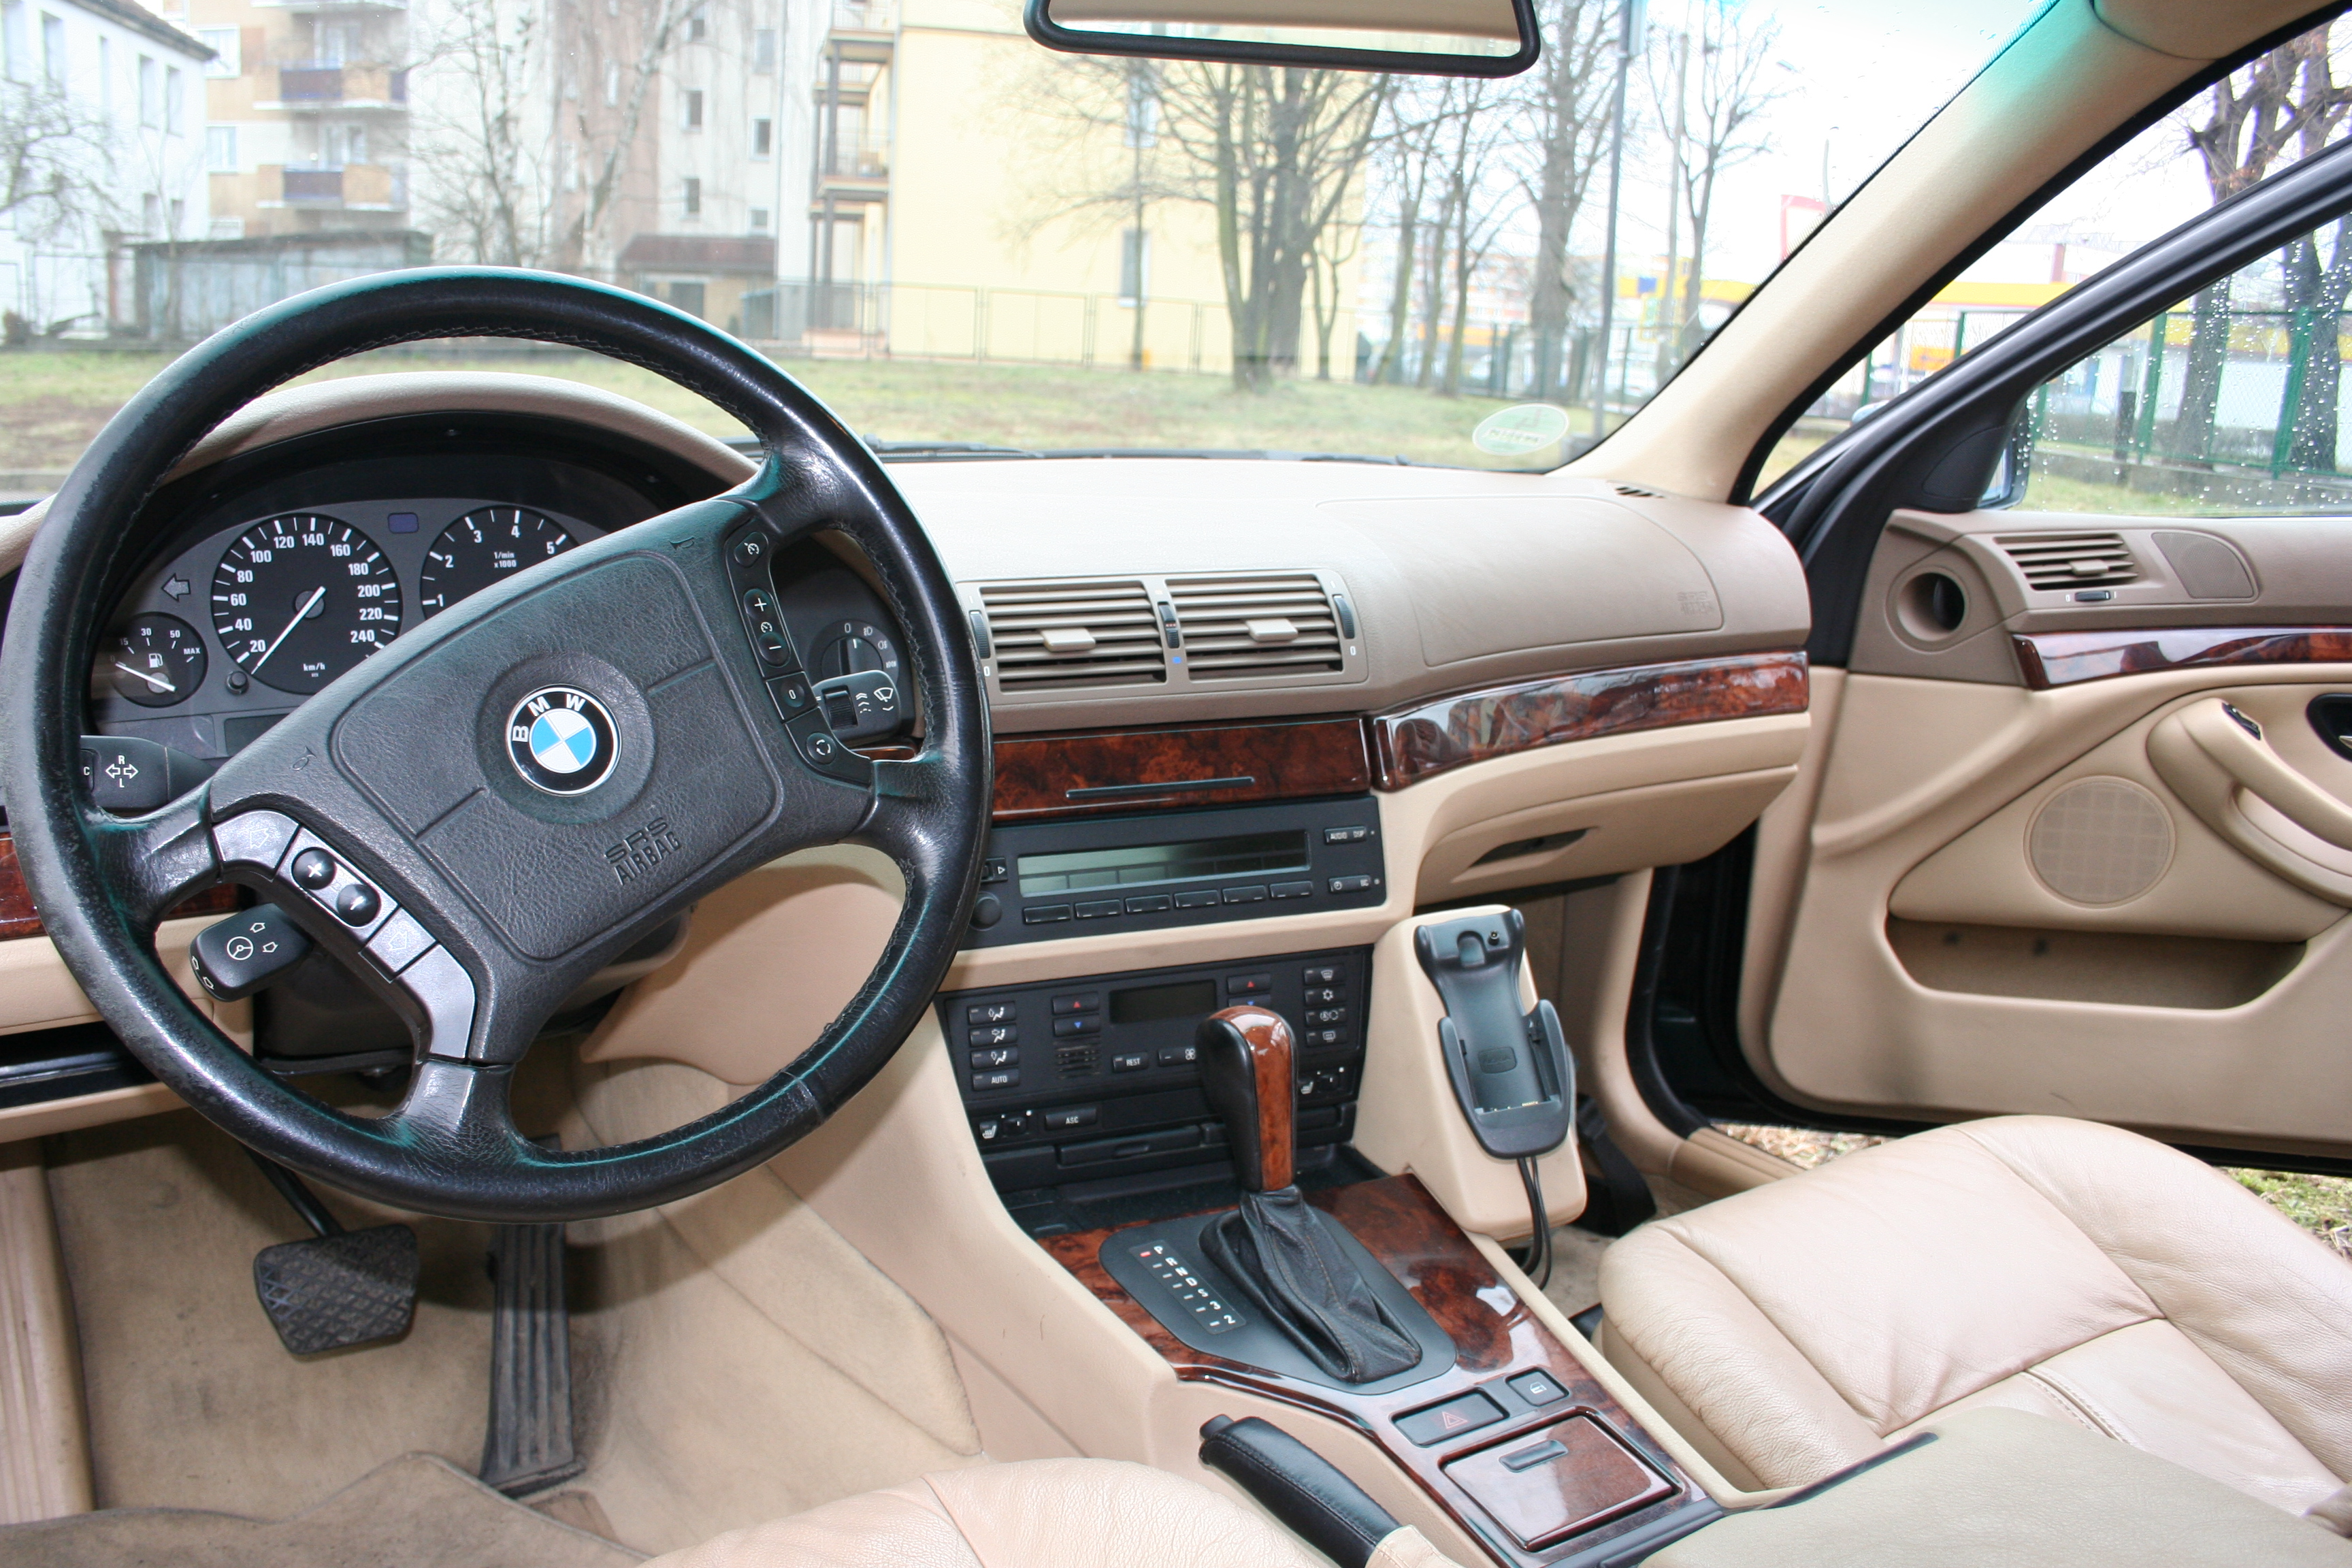 File:Bmw 528 interior 96.JPG